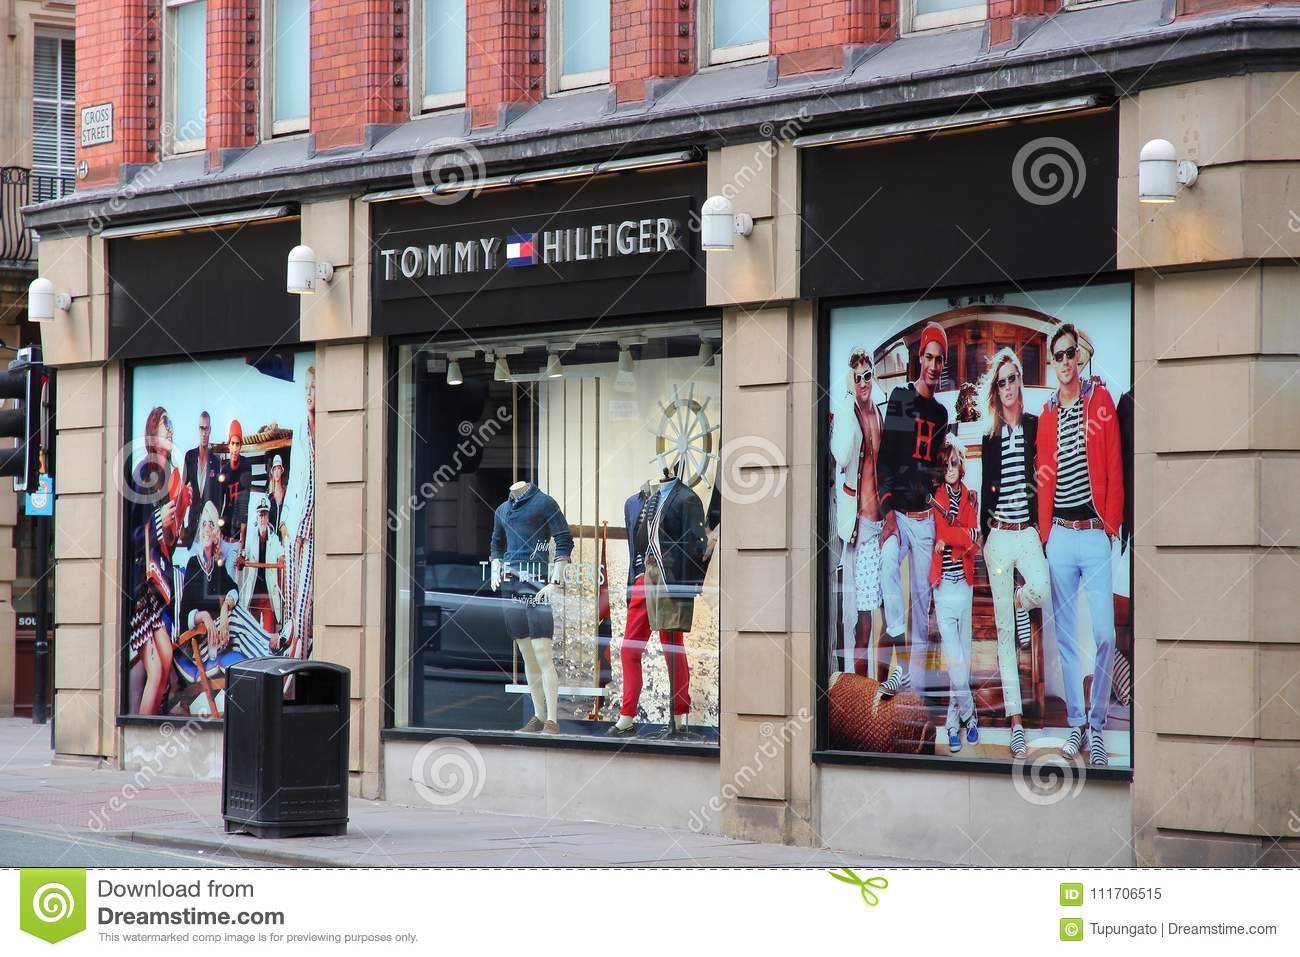 2a3b77b3 MANCHESTER, UK - APRIL 21, 2013: Tommy Hilfiger fashion store in  Manchester, UK. Tommy Hilfiger Corporation has 1, 400 stores worldwide.